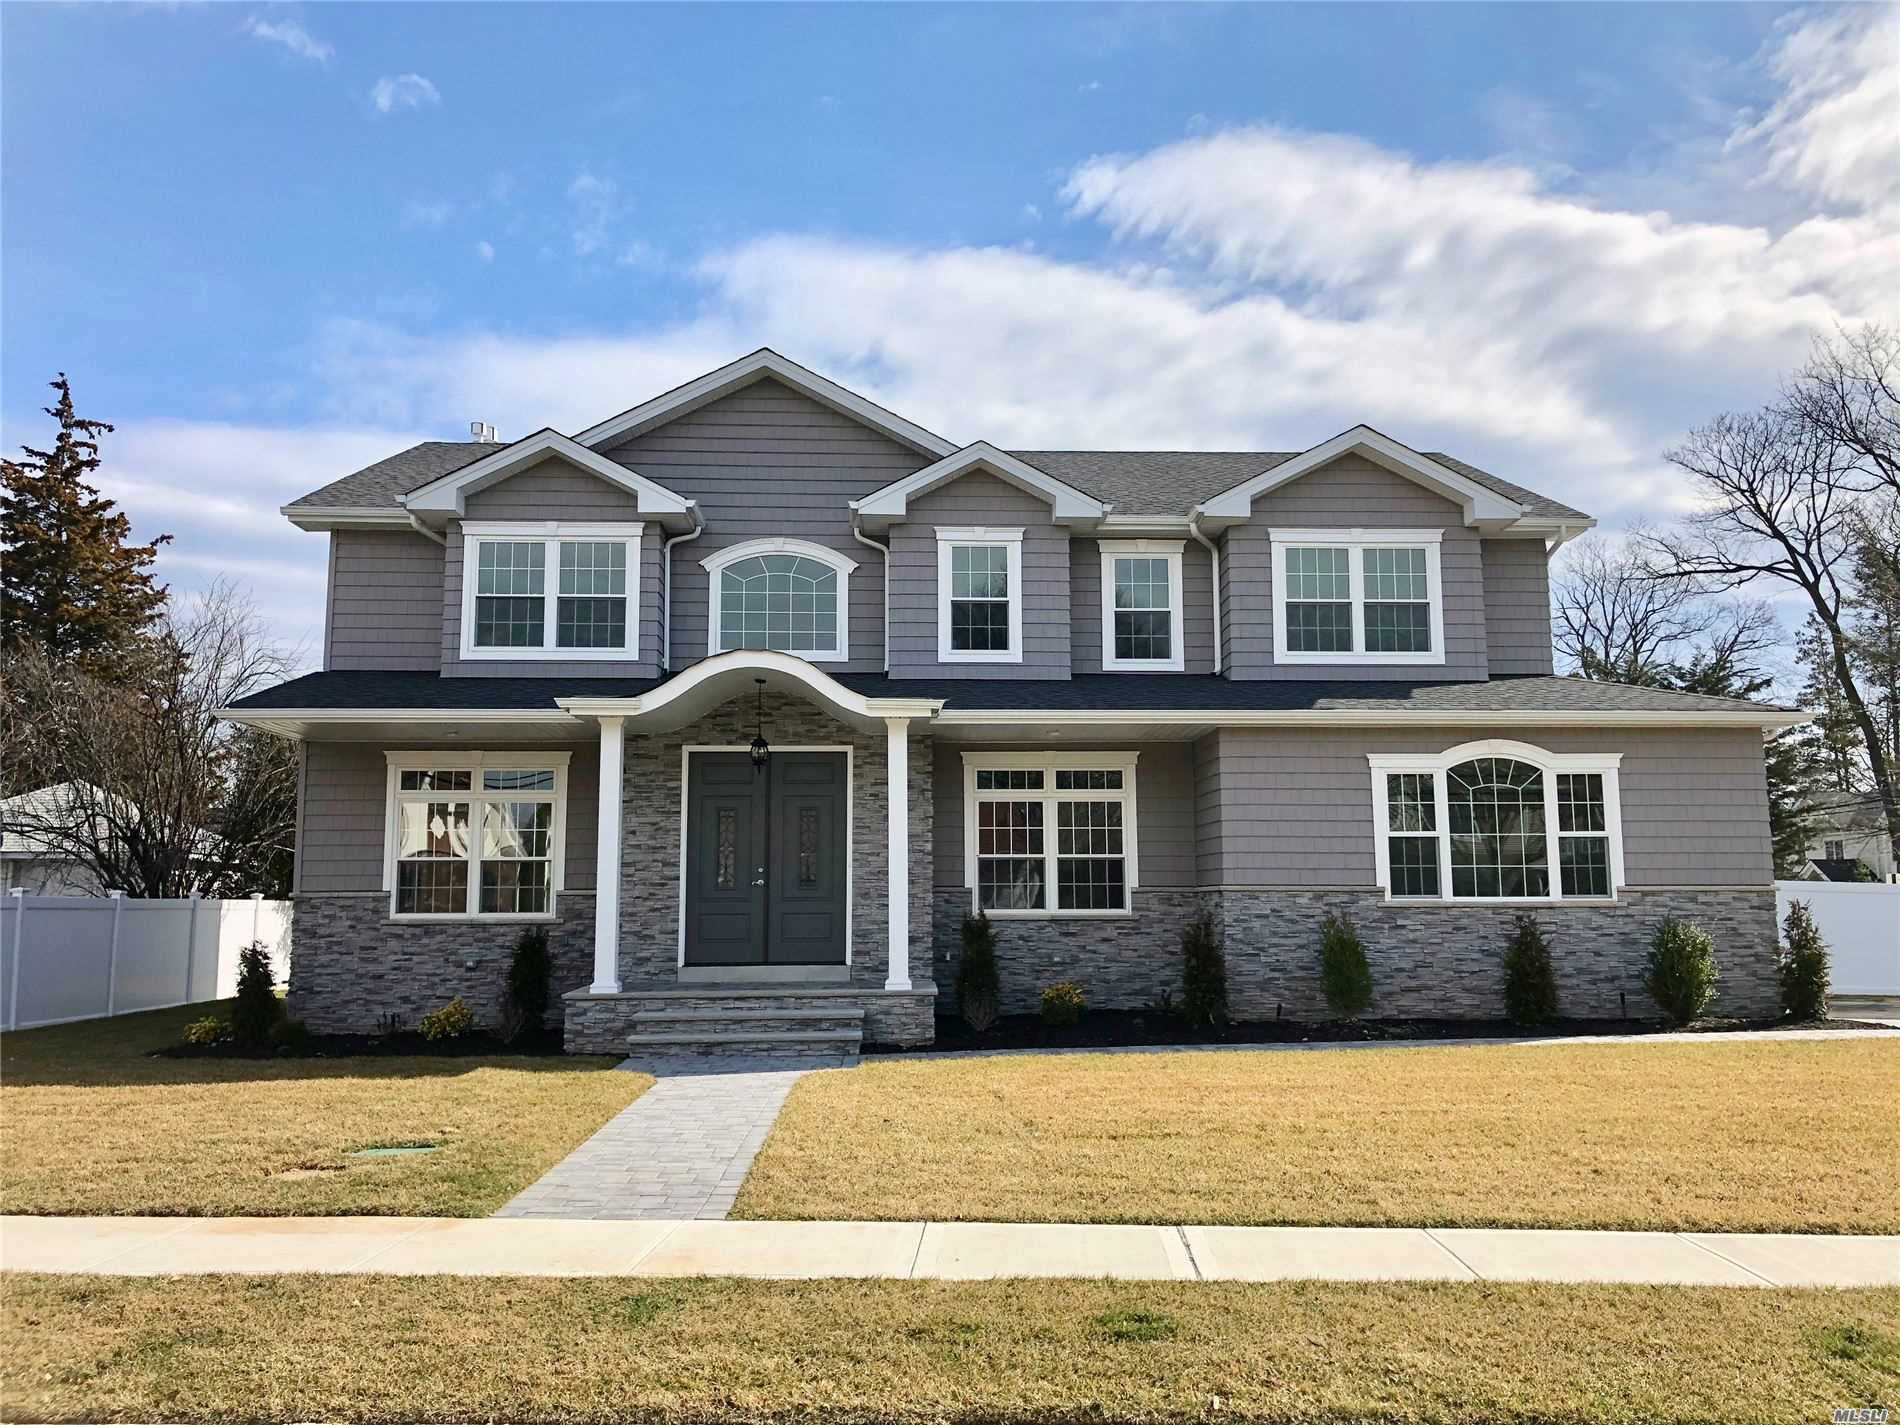 Prime North Syosset! 3800 Sqf Home, Boosting 5 Bedrooms, 4.5 Bathrooms, , Sun-Filled Master Br W/Tray Ceiling His And Hers Wic, Designer Kitchen W Center Island And Ss Appliances, Pantry .Bedroom On Mail Level With Full Bath . Den With Fire Place , Laundry , Fenced Back Yard .